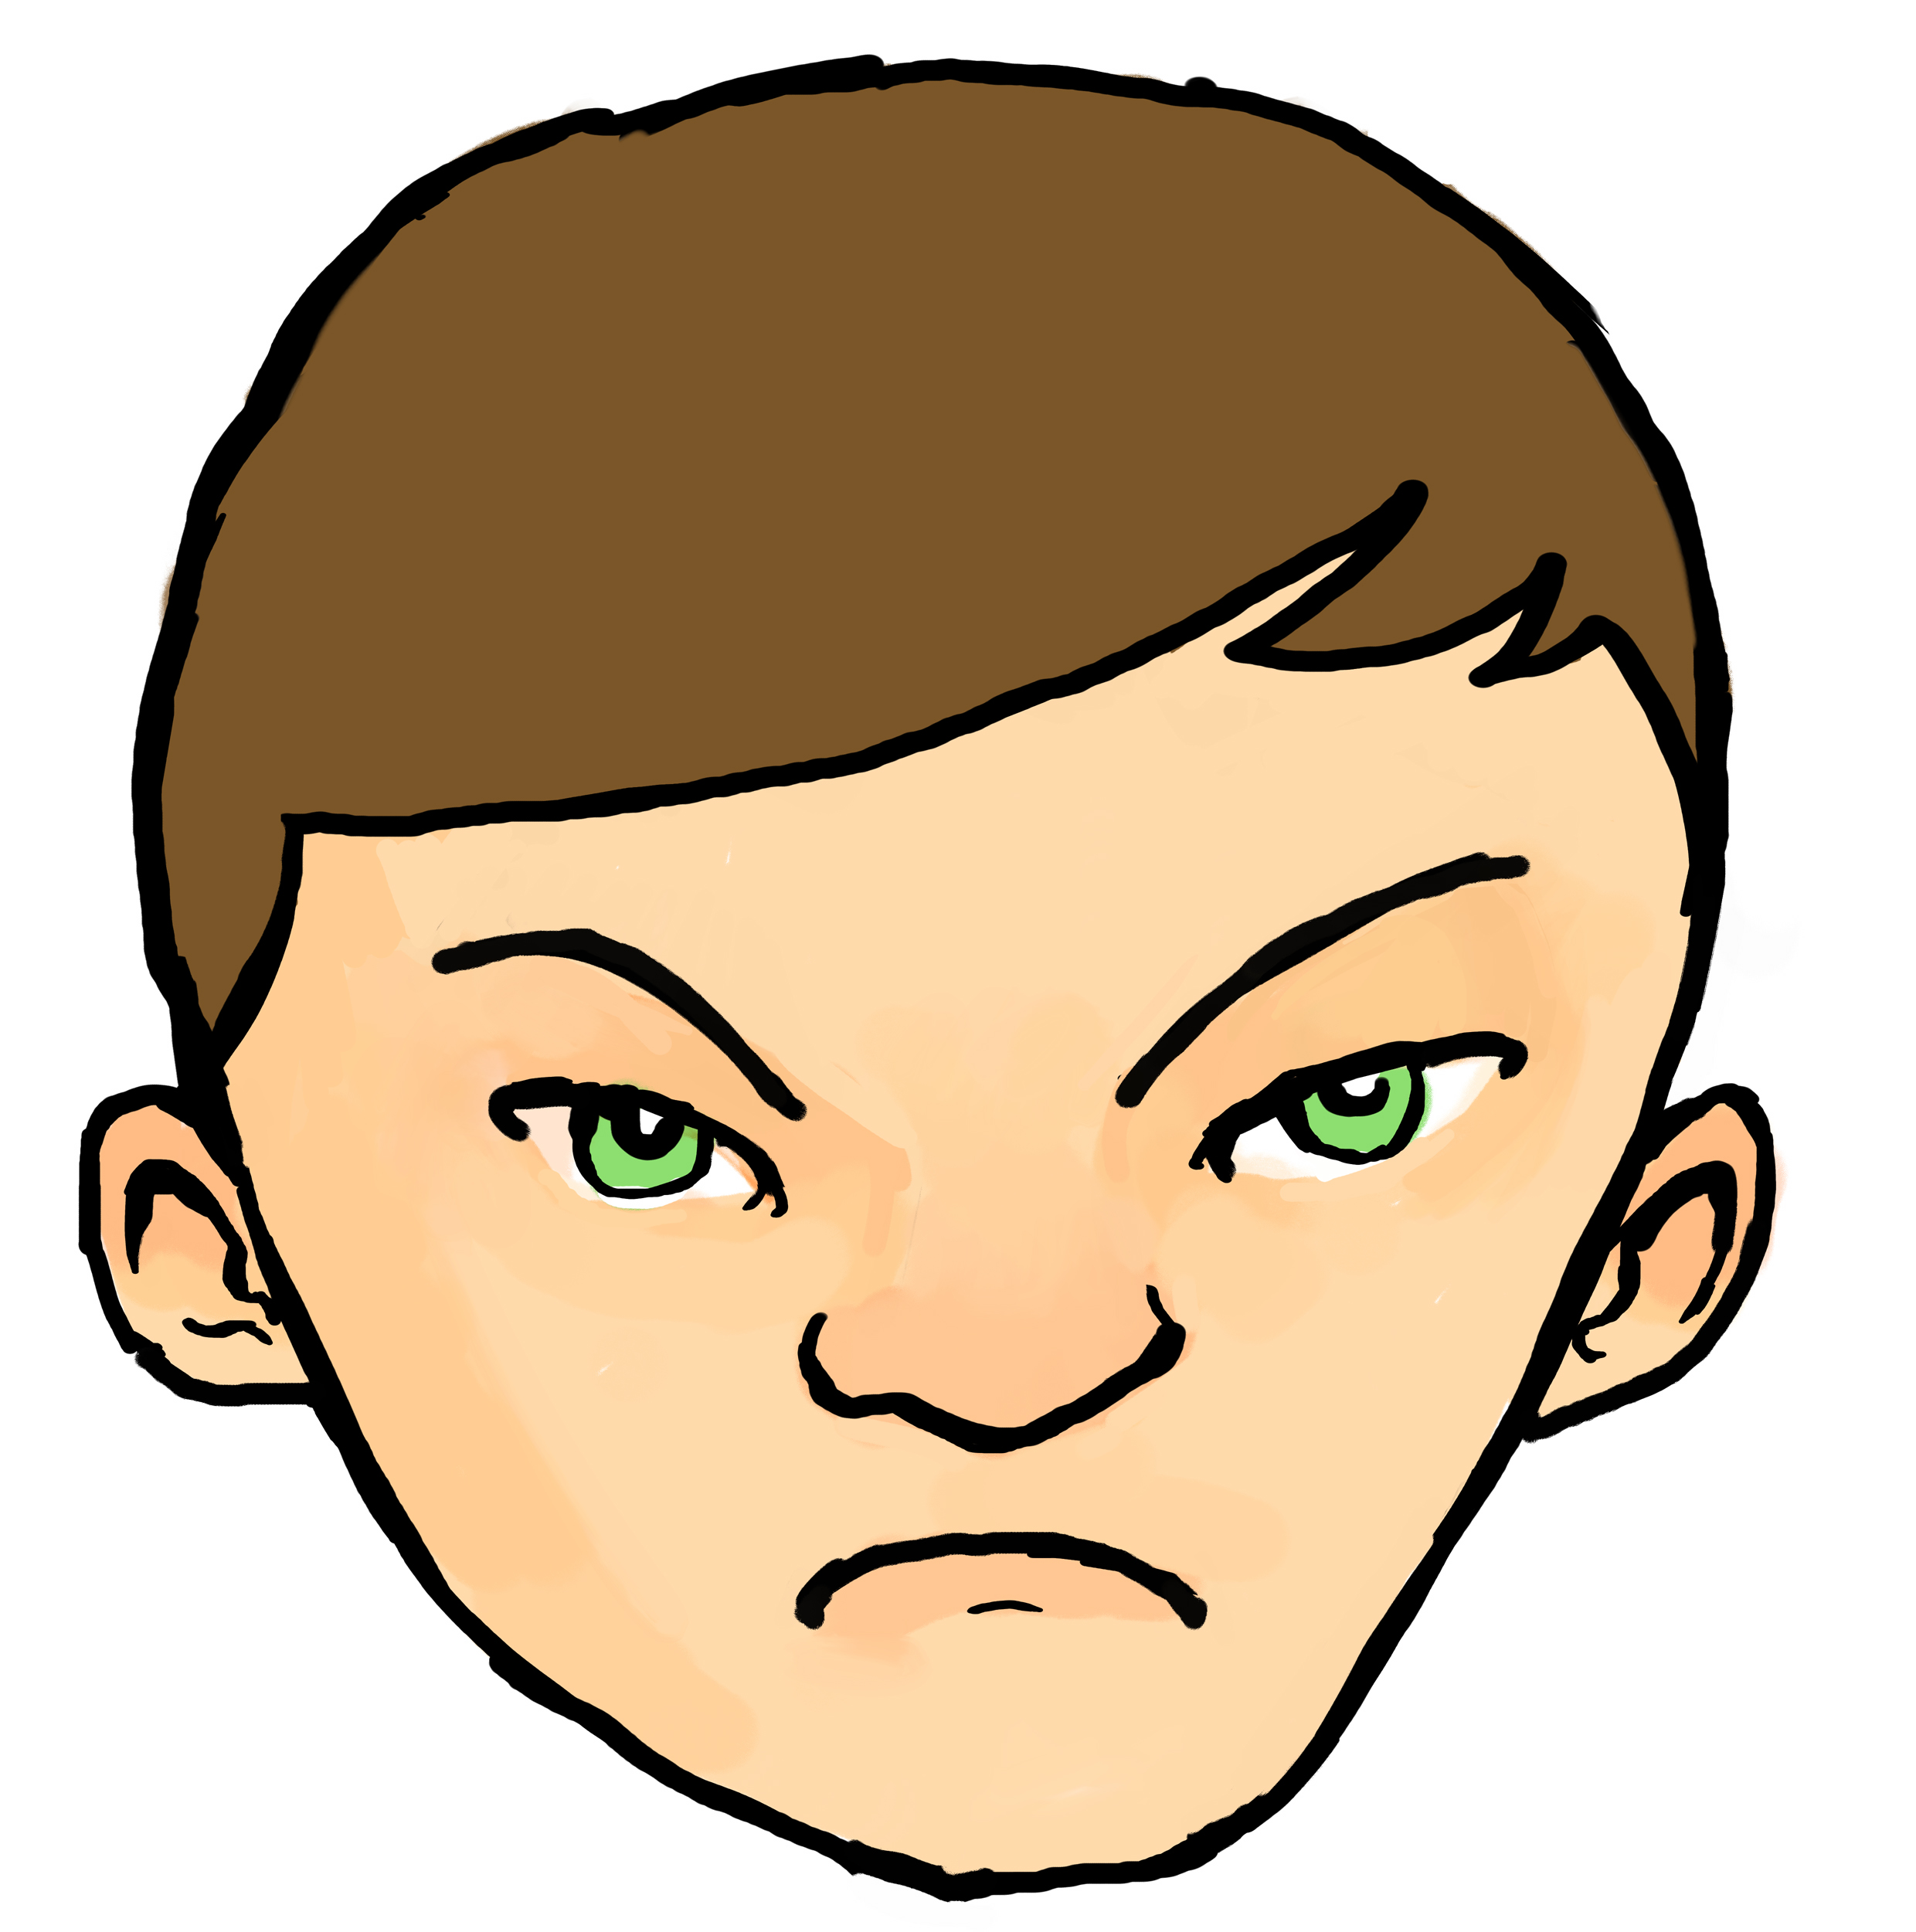 angry boy clipart